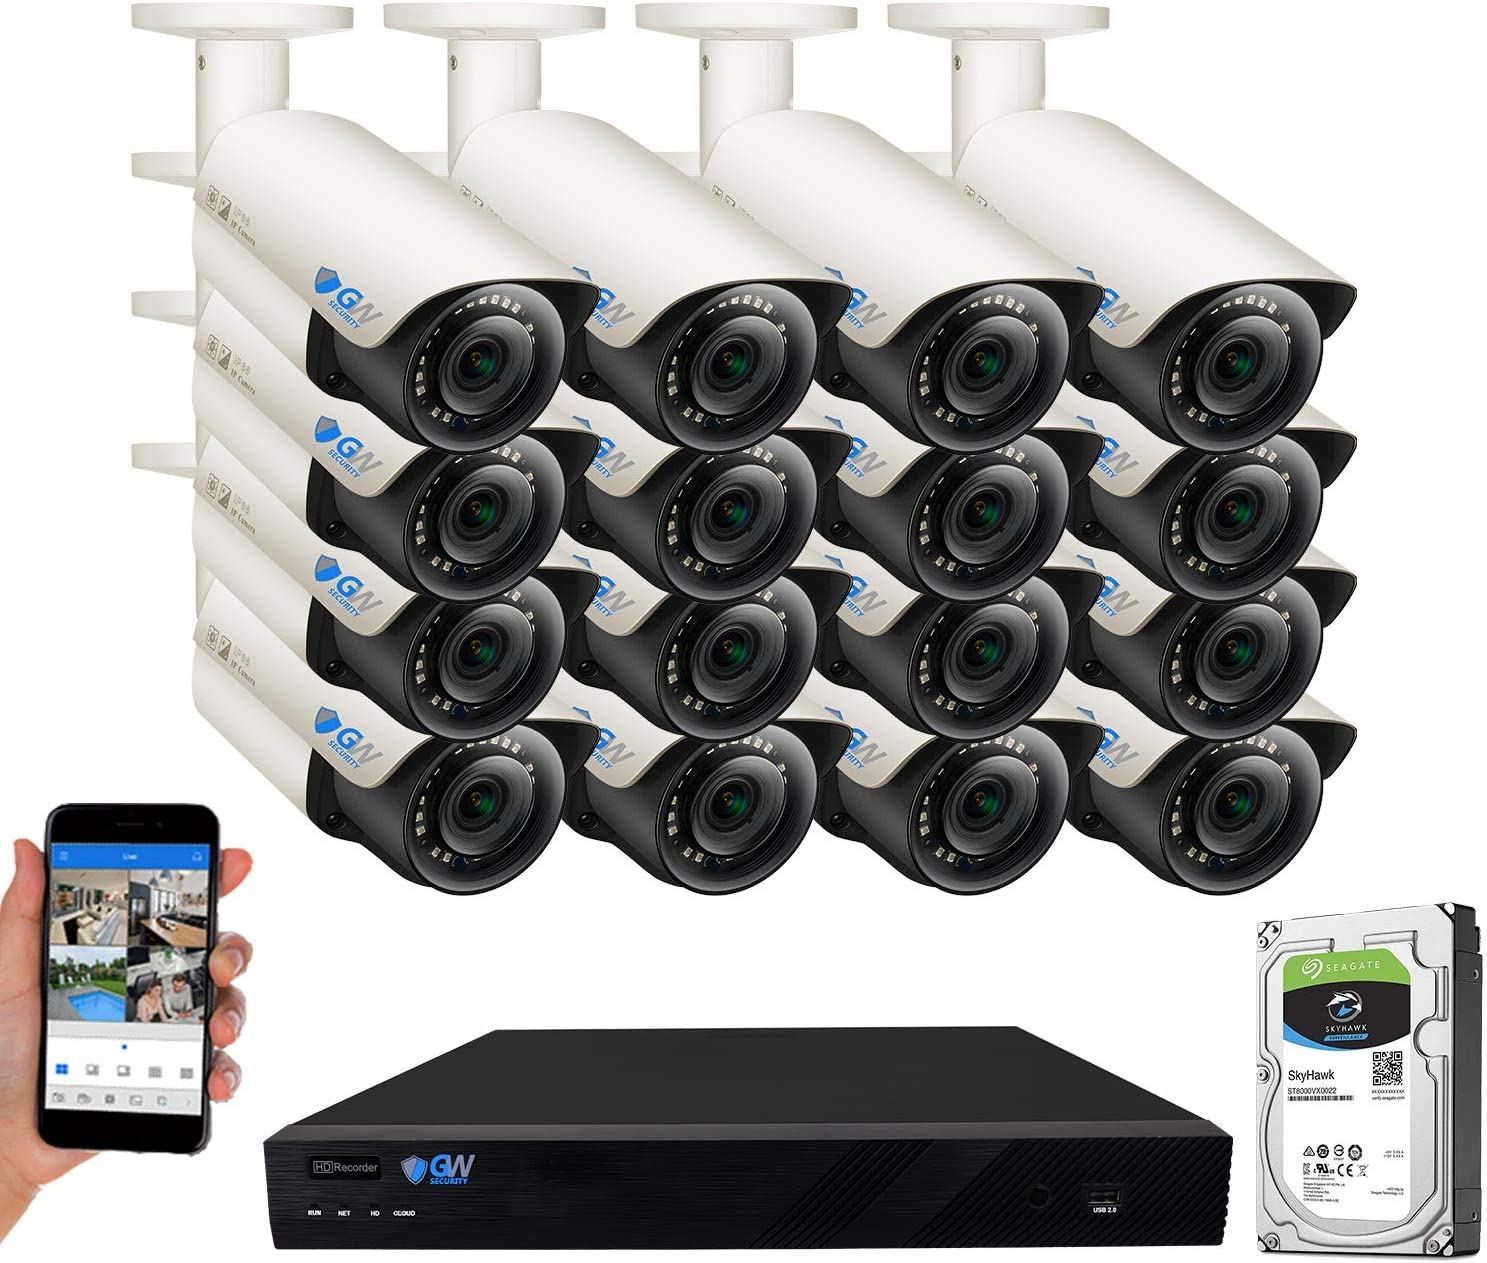 GW Security 16CH 4K NVR UHD 5MP PoE Security Camera System with 16 Outdoor/Indoor 2.8-12mm Varifocal Zoom 5MP 1920P H.265 IP Cameras, 120FT Night Vision, Free APP/PC/Mac Remote Access View